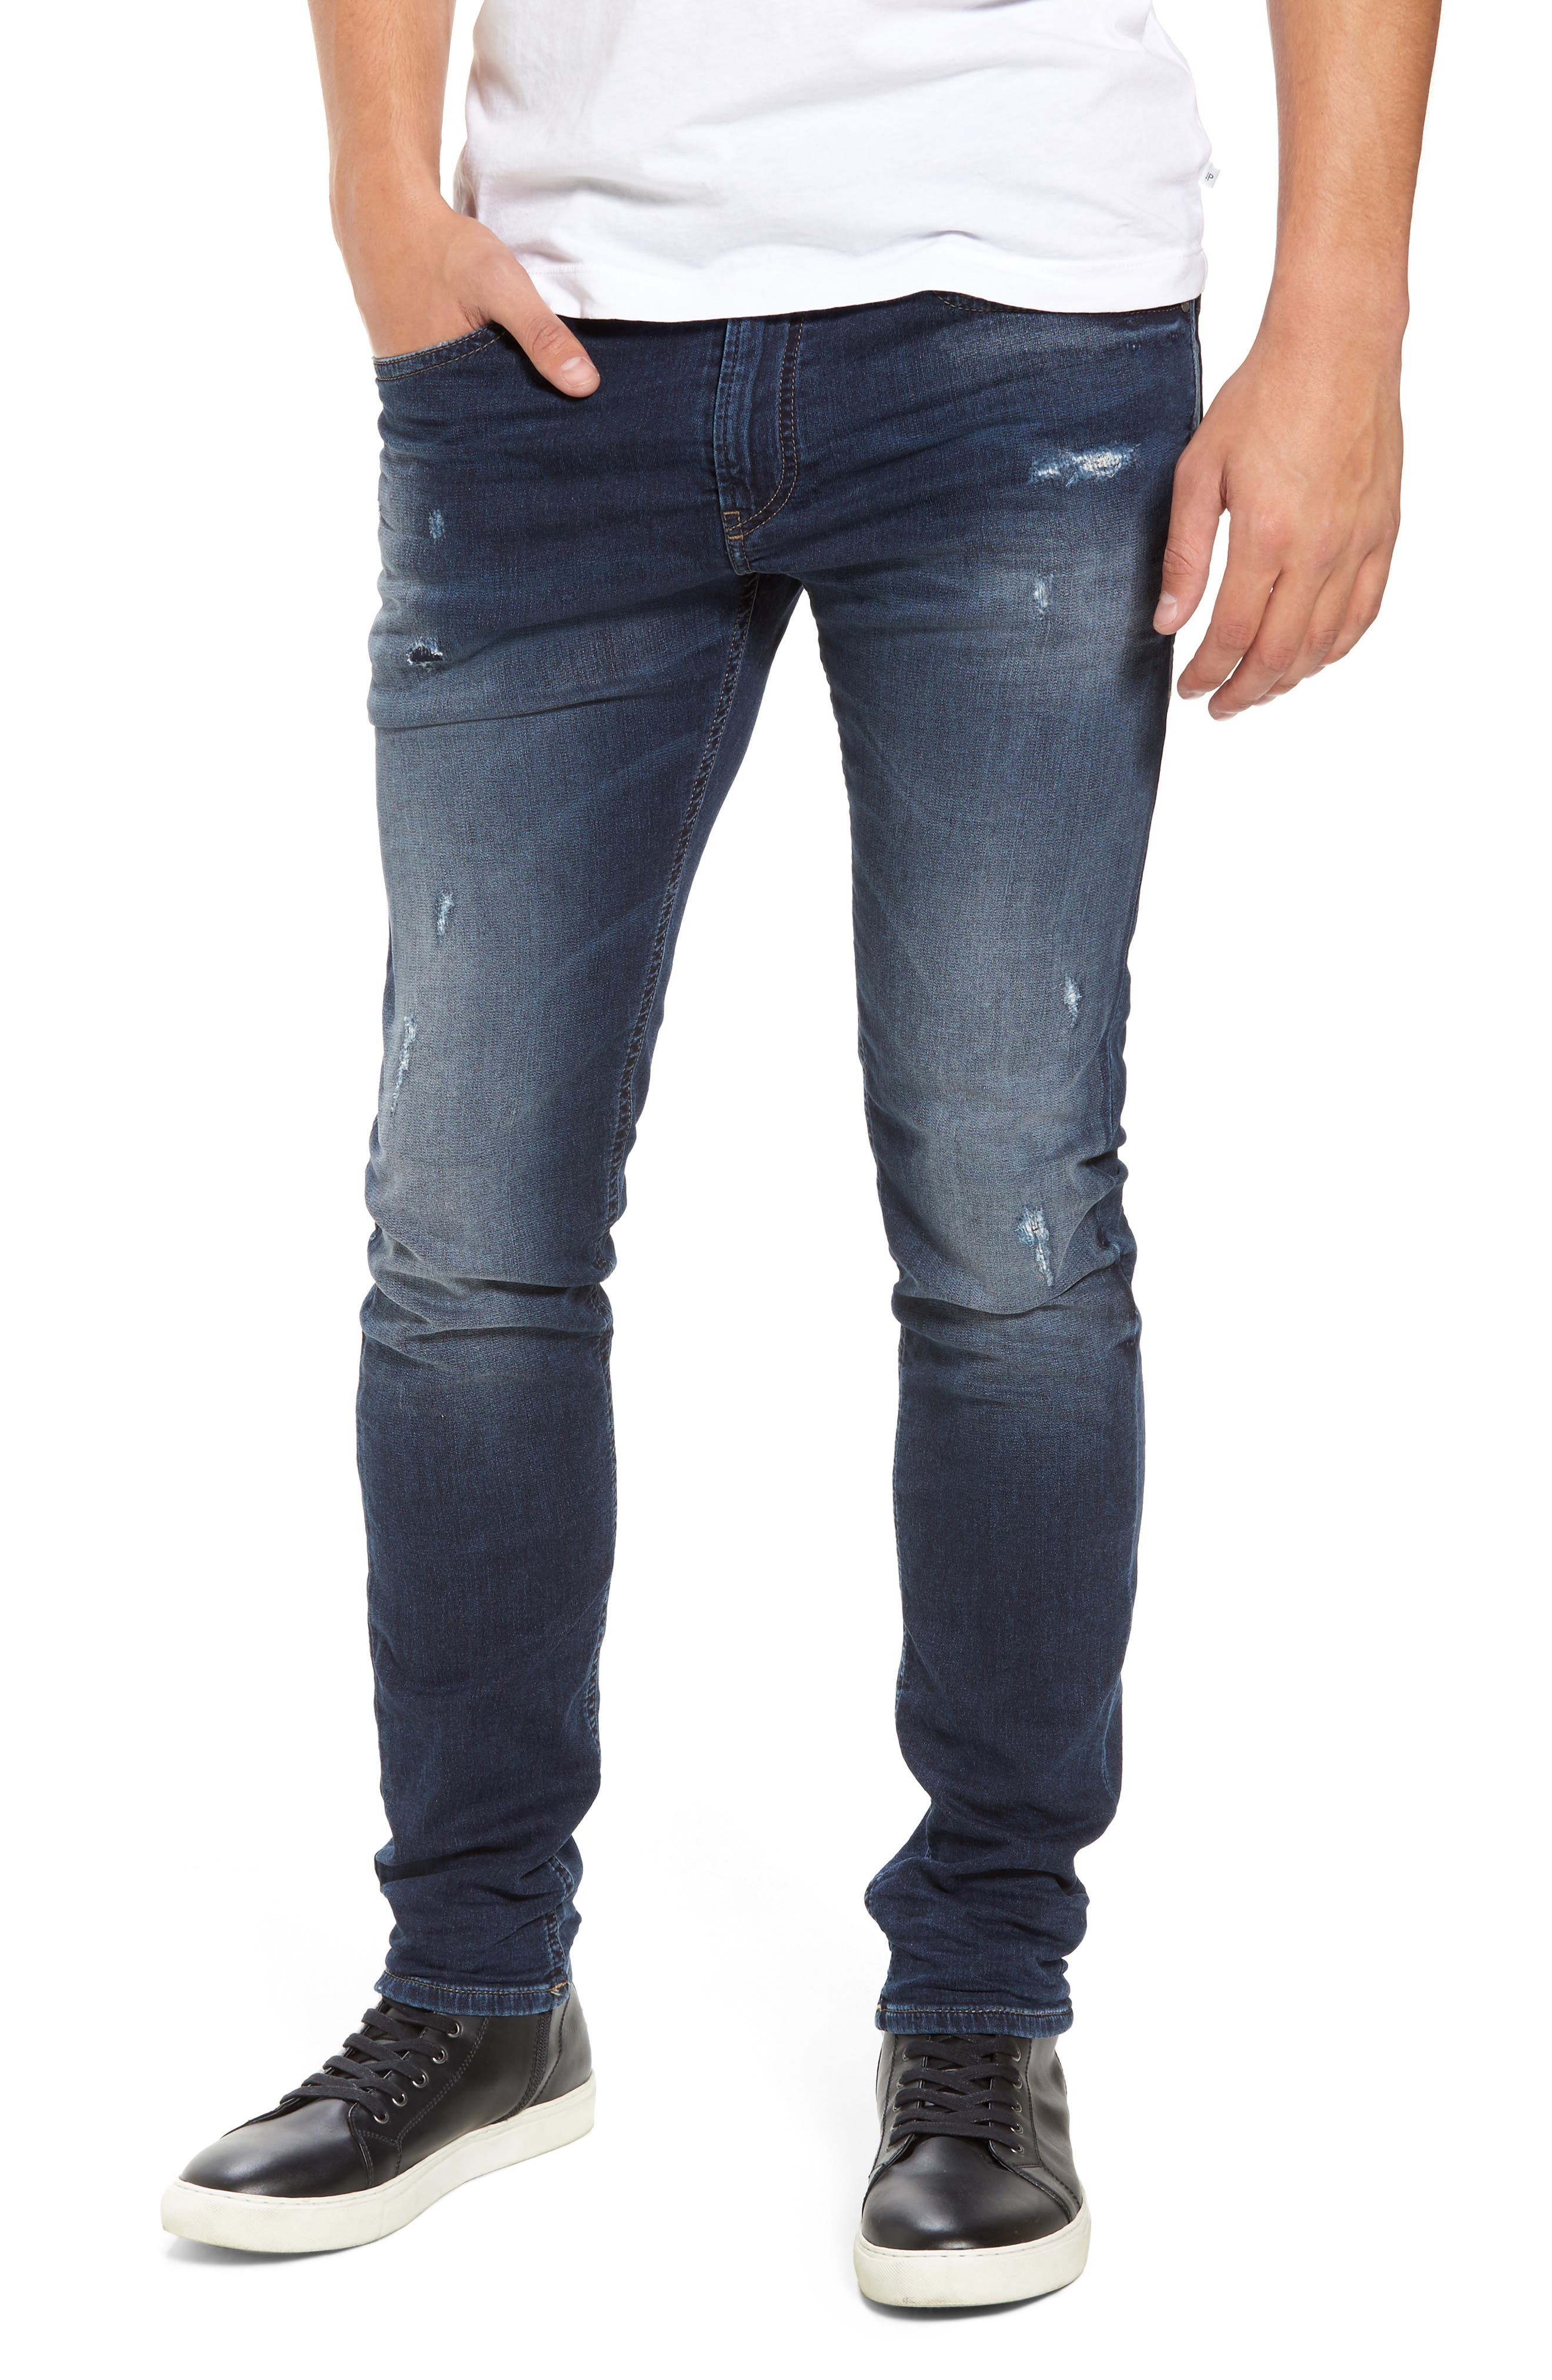 Thommer Slim Fit Jeans,                         Main,                         color, 0686W